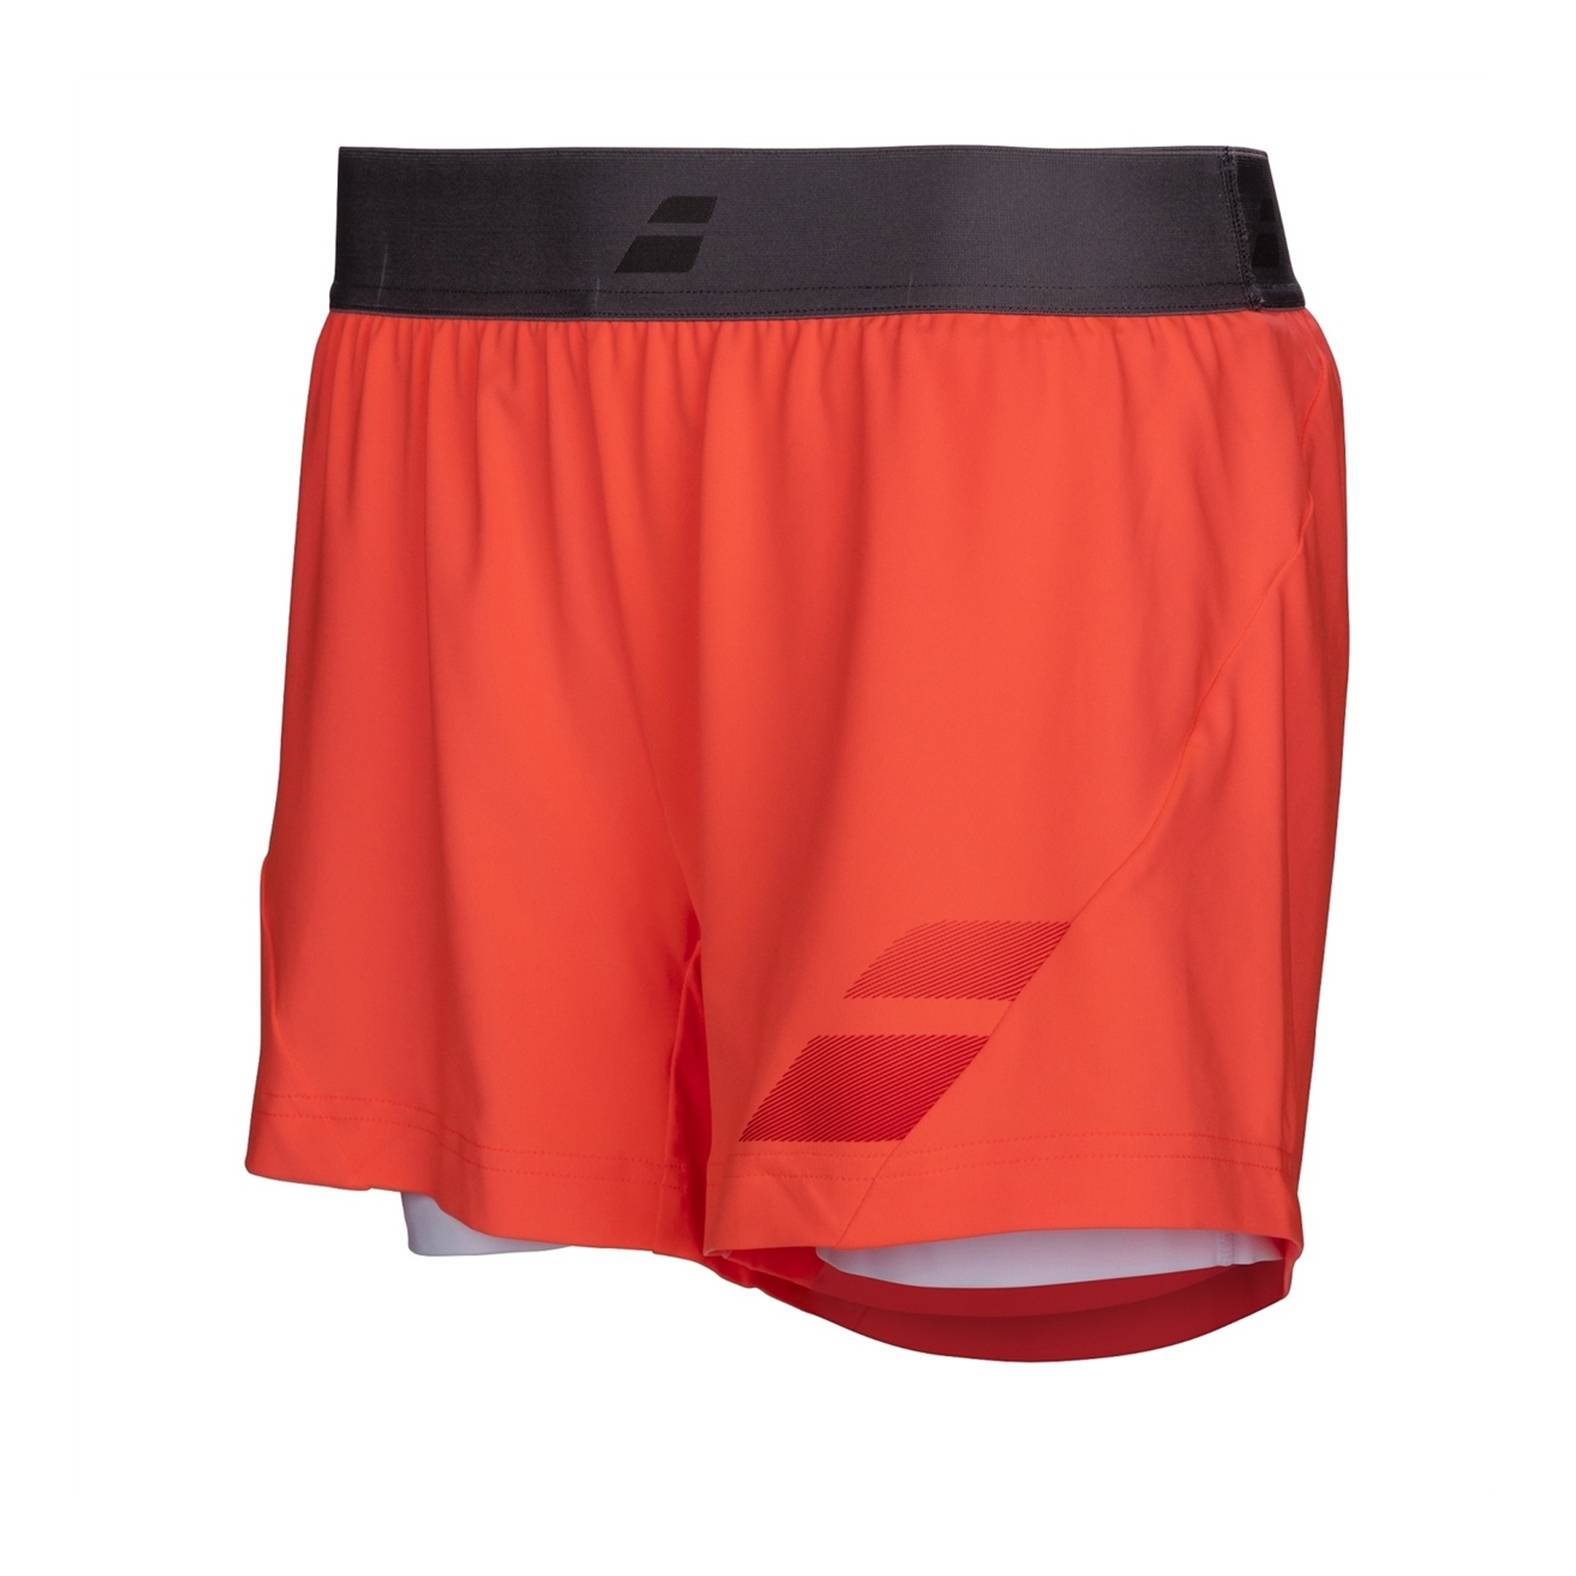 Babolat Performance Shorts Women XS